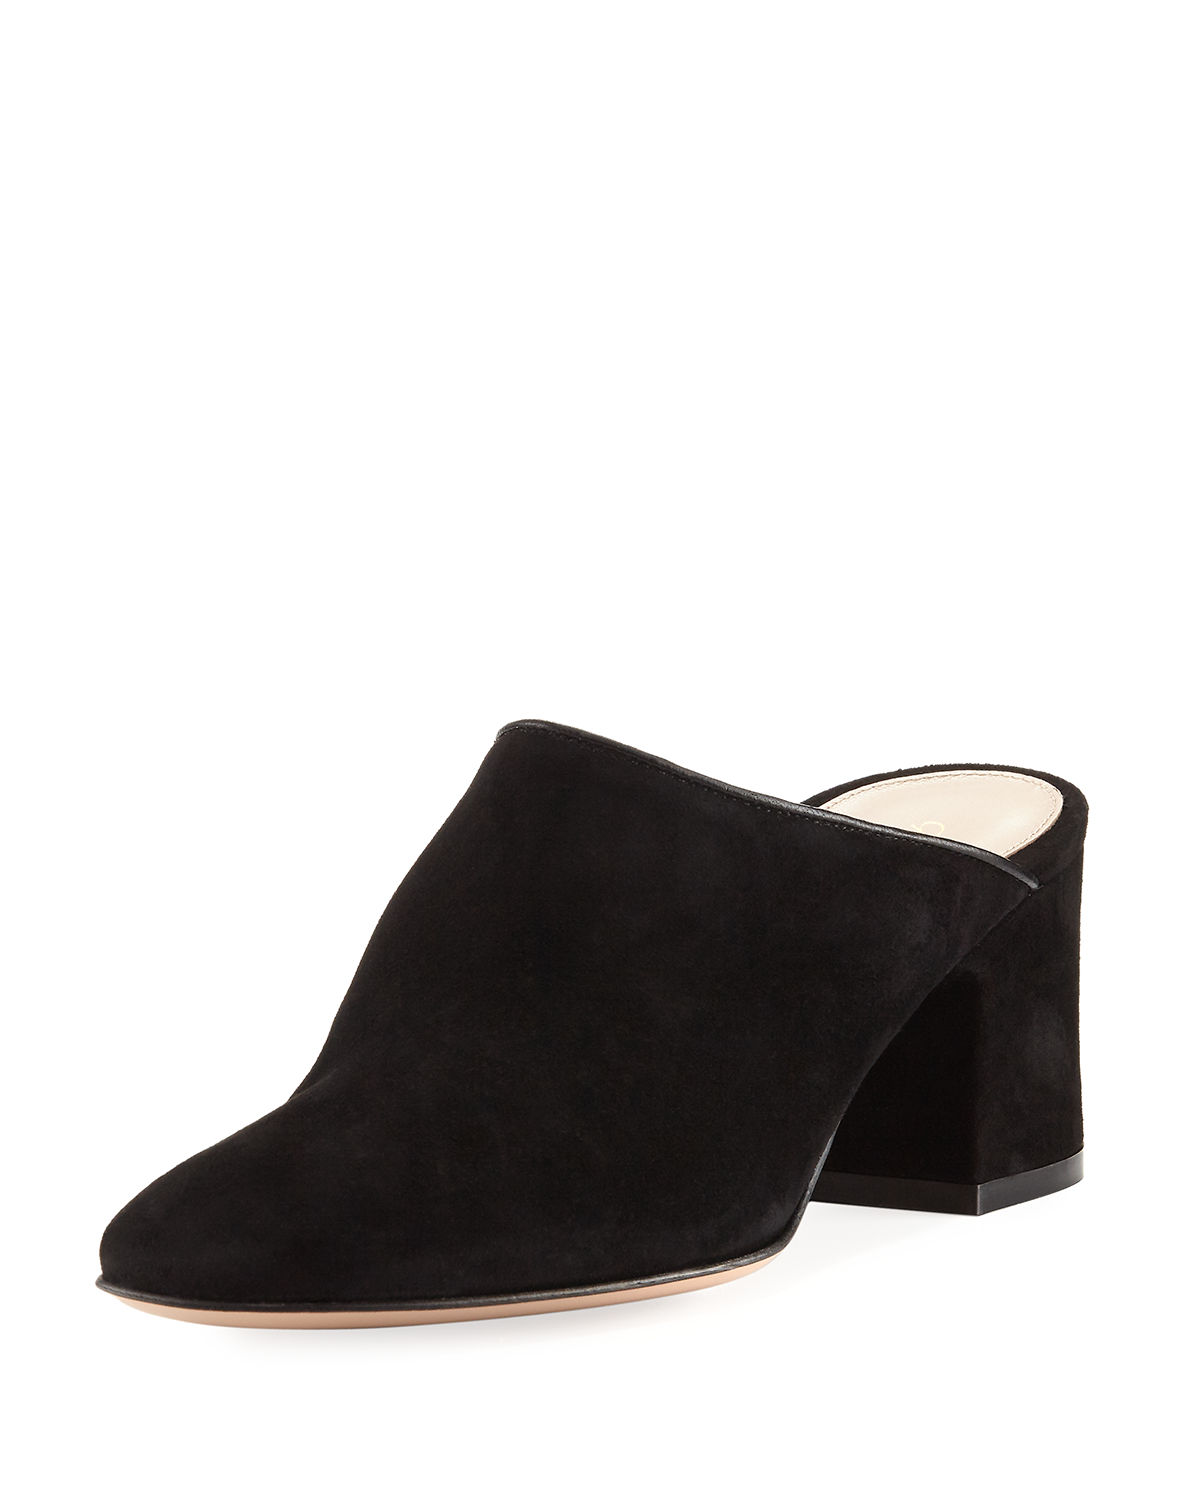 Suede 60mm Block-Heel Mule